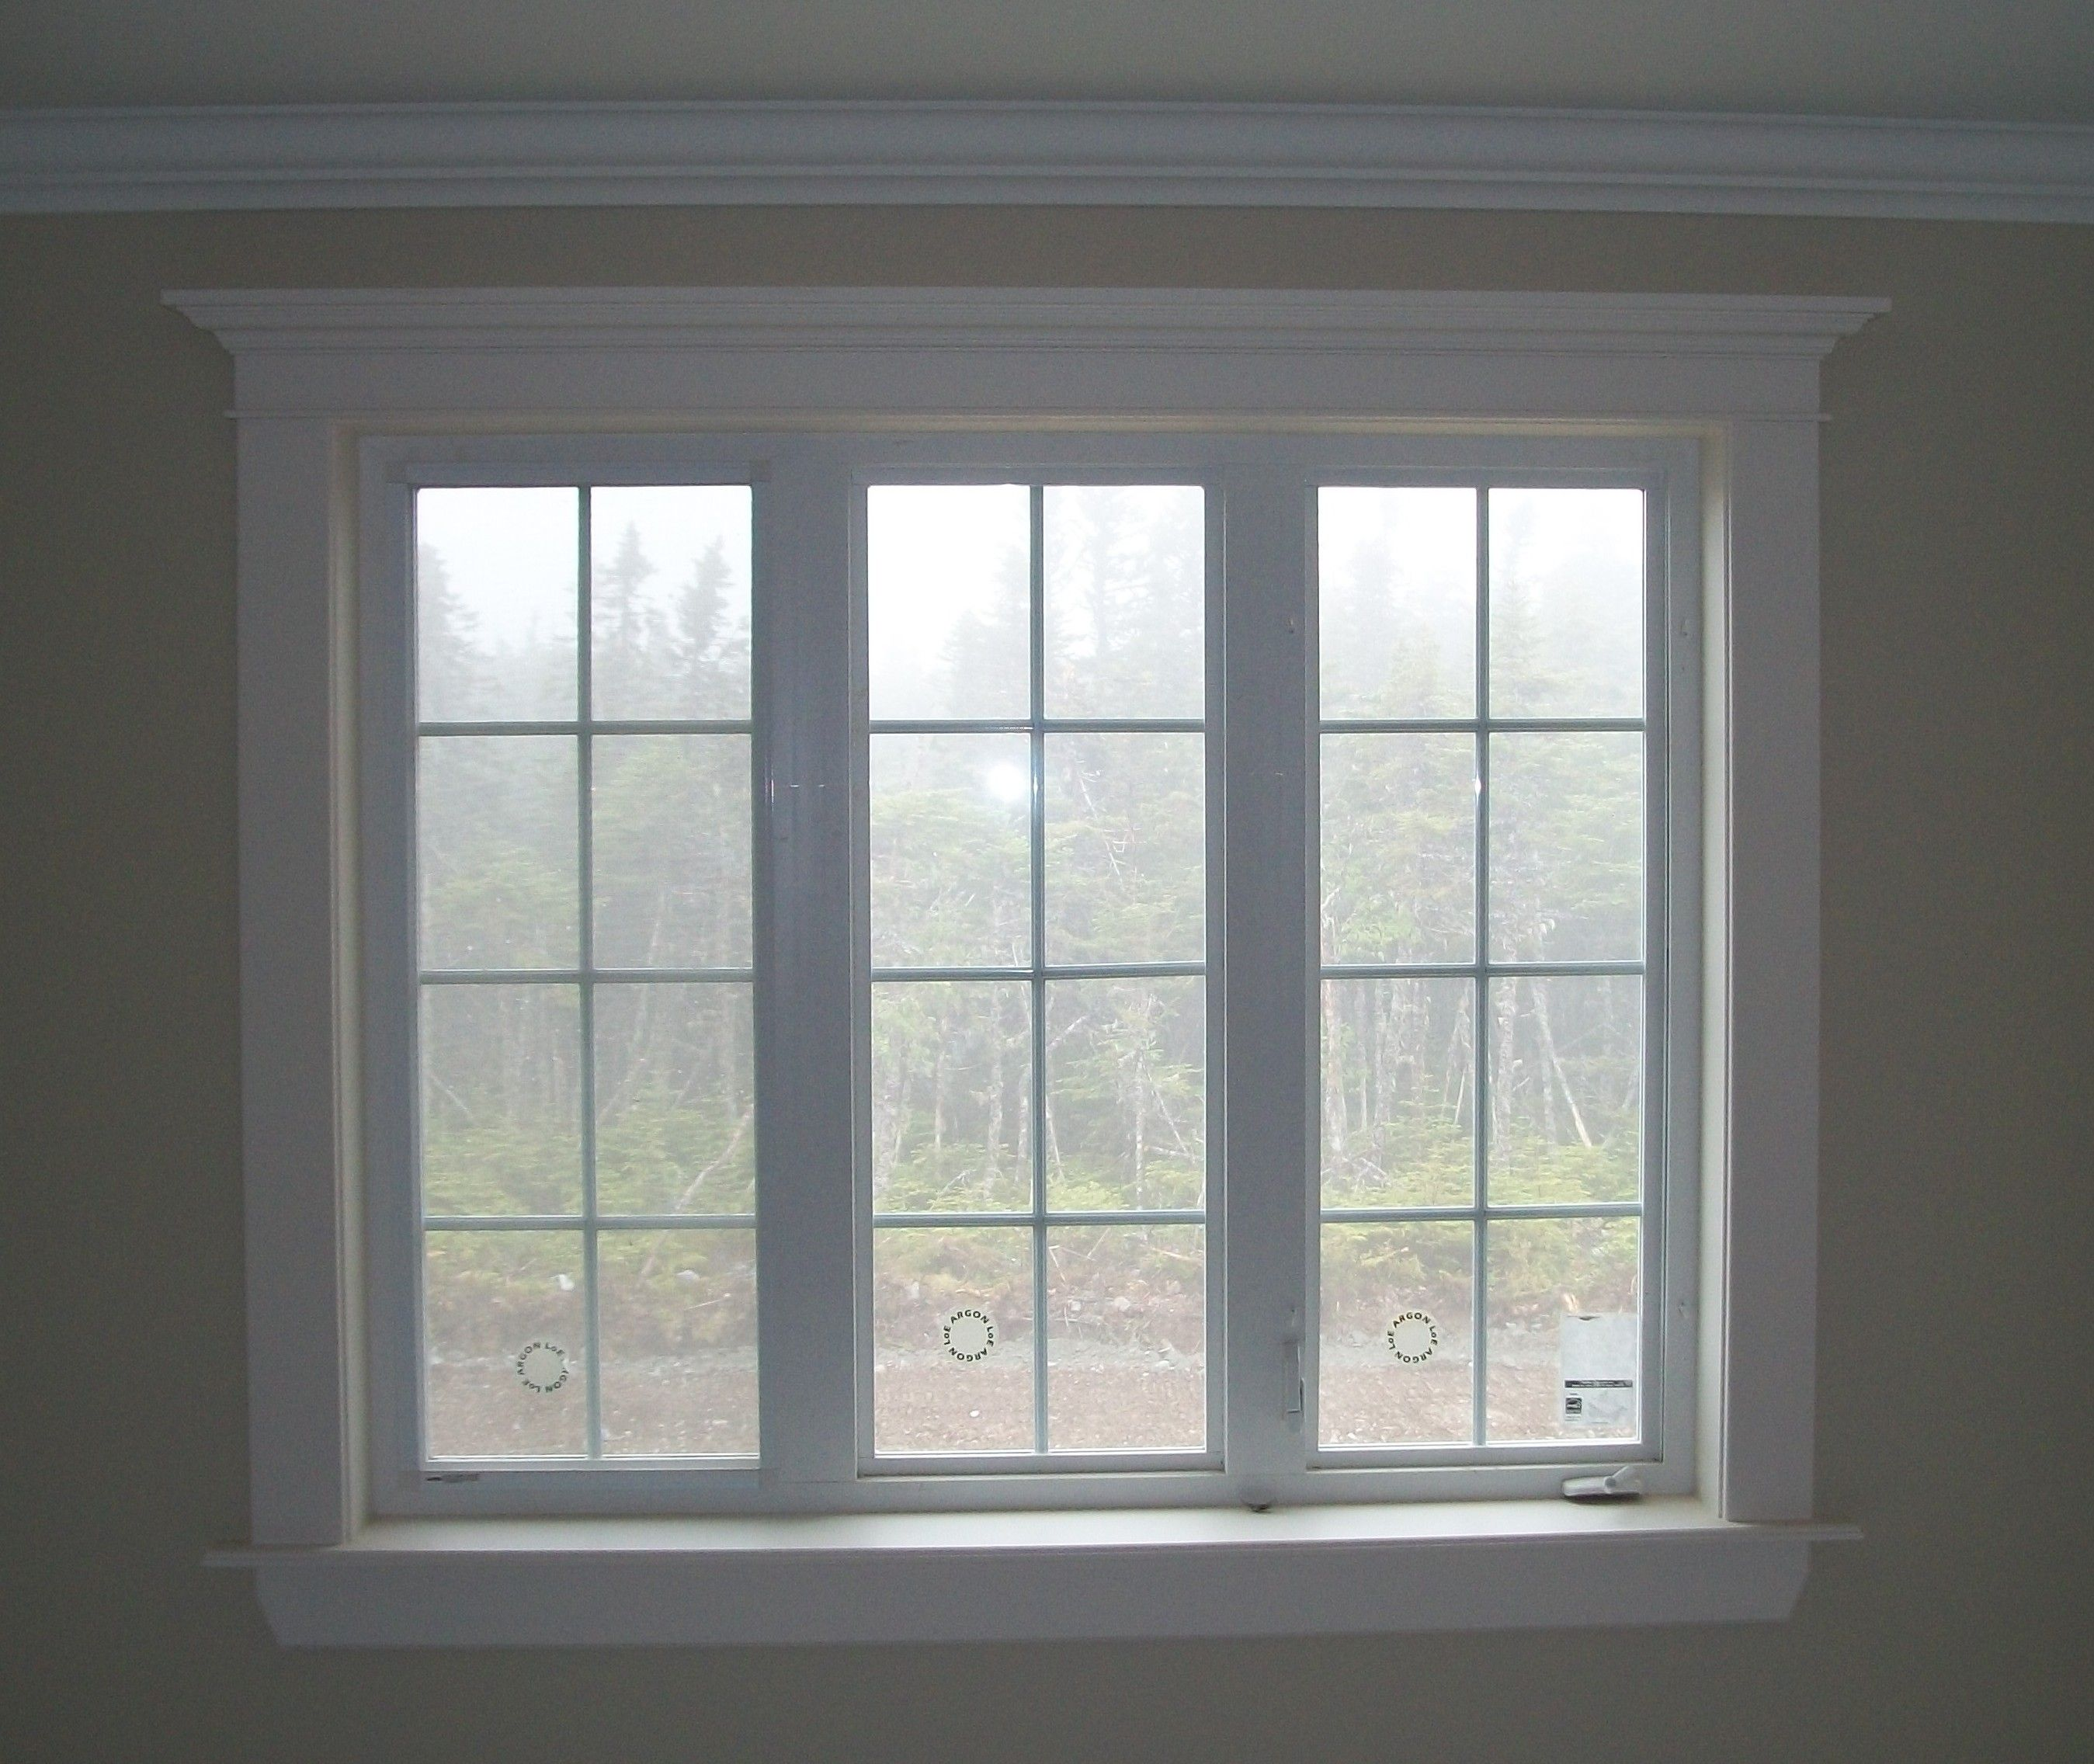 Window Trim Google Search Home Decor Pinterest Window Google Search And Google